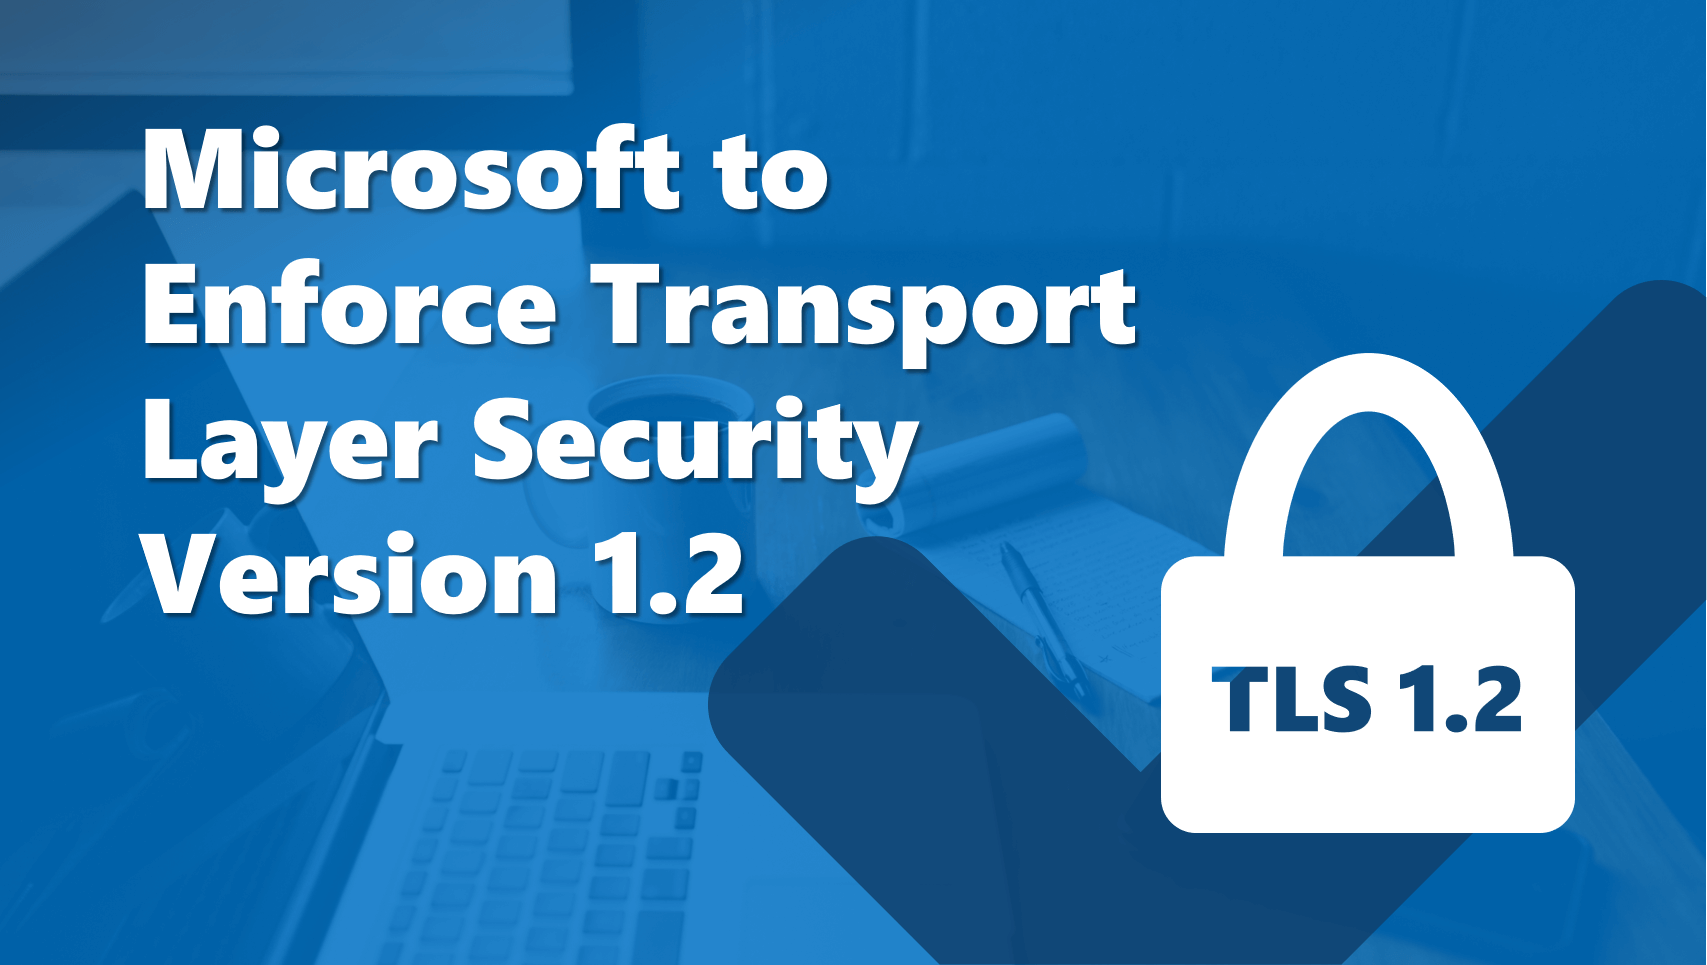 TLS 1.2 Microsoft Enforcement